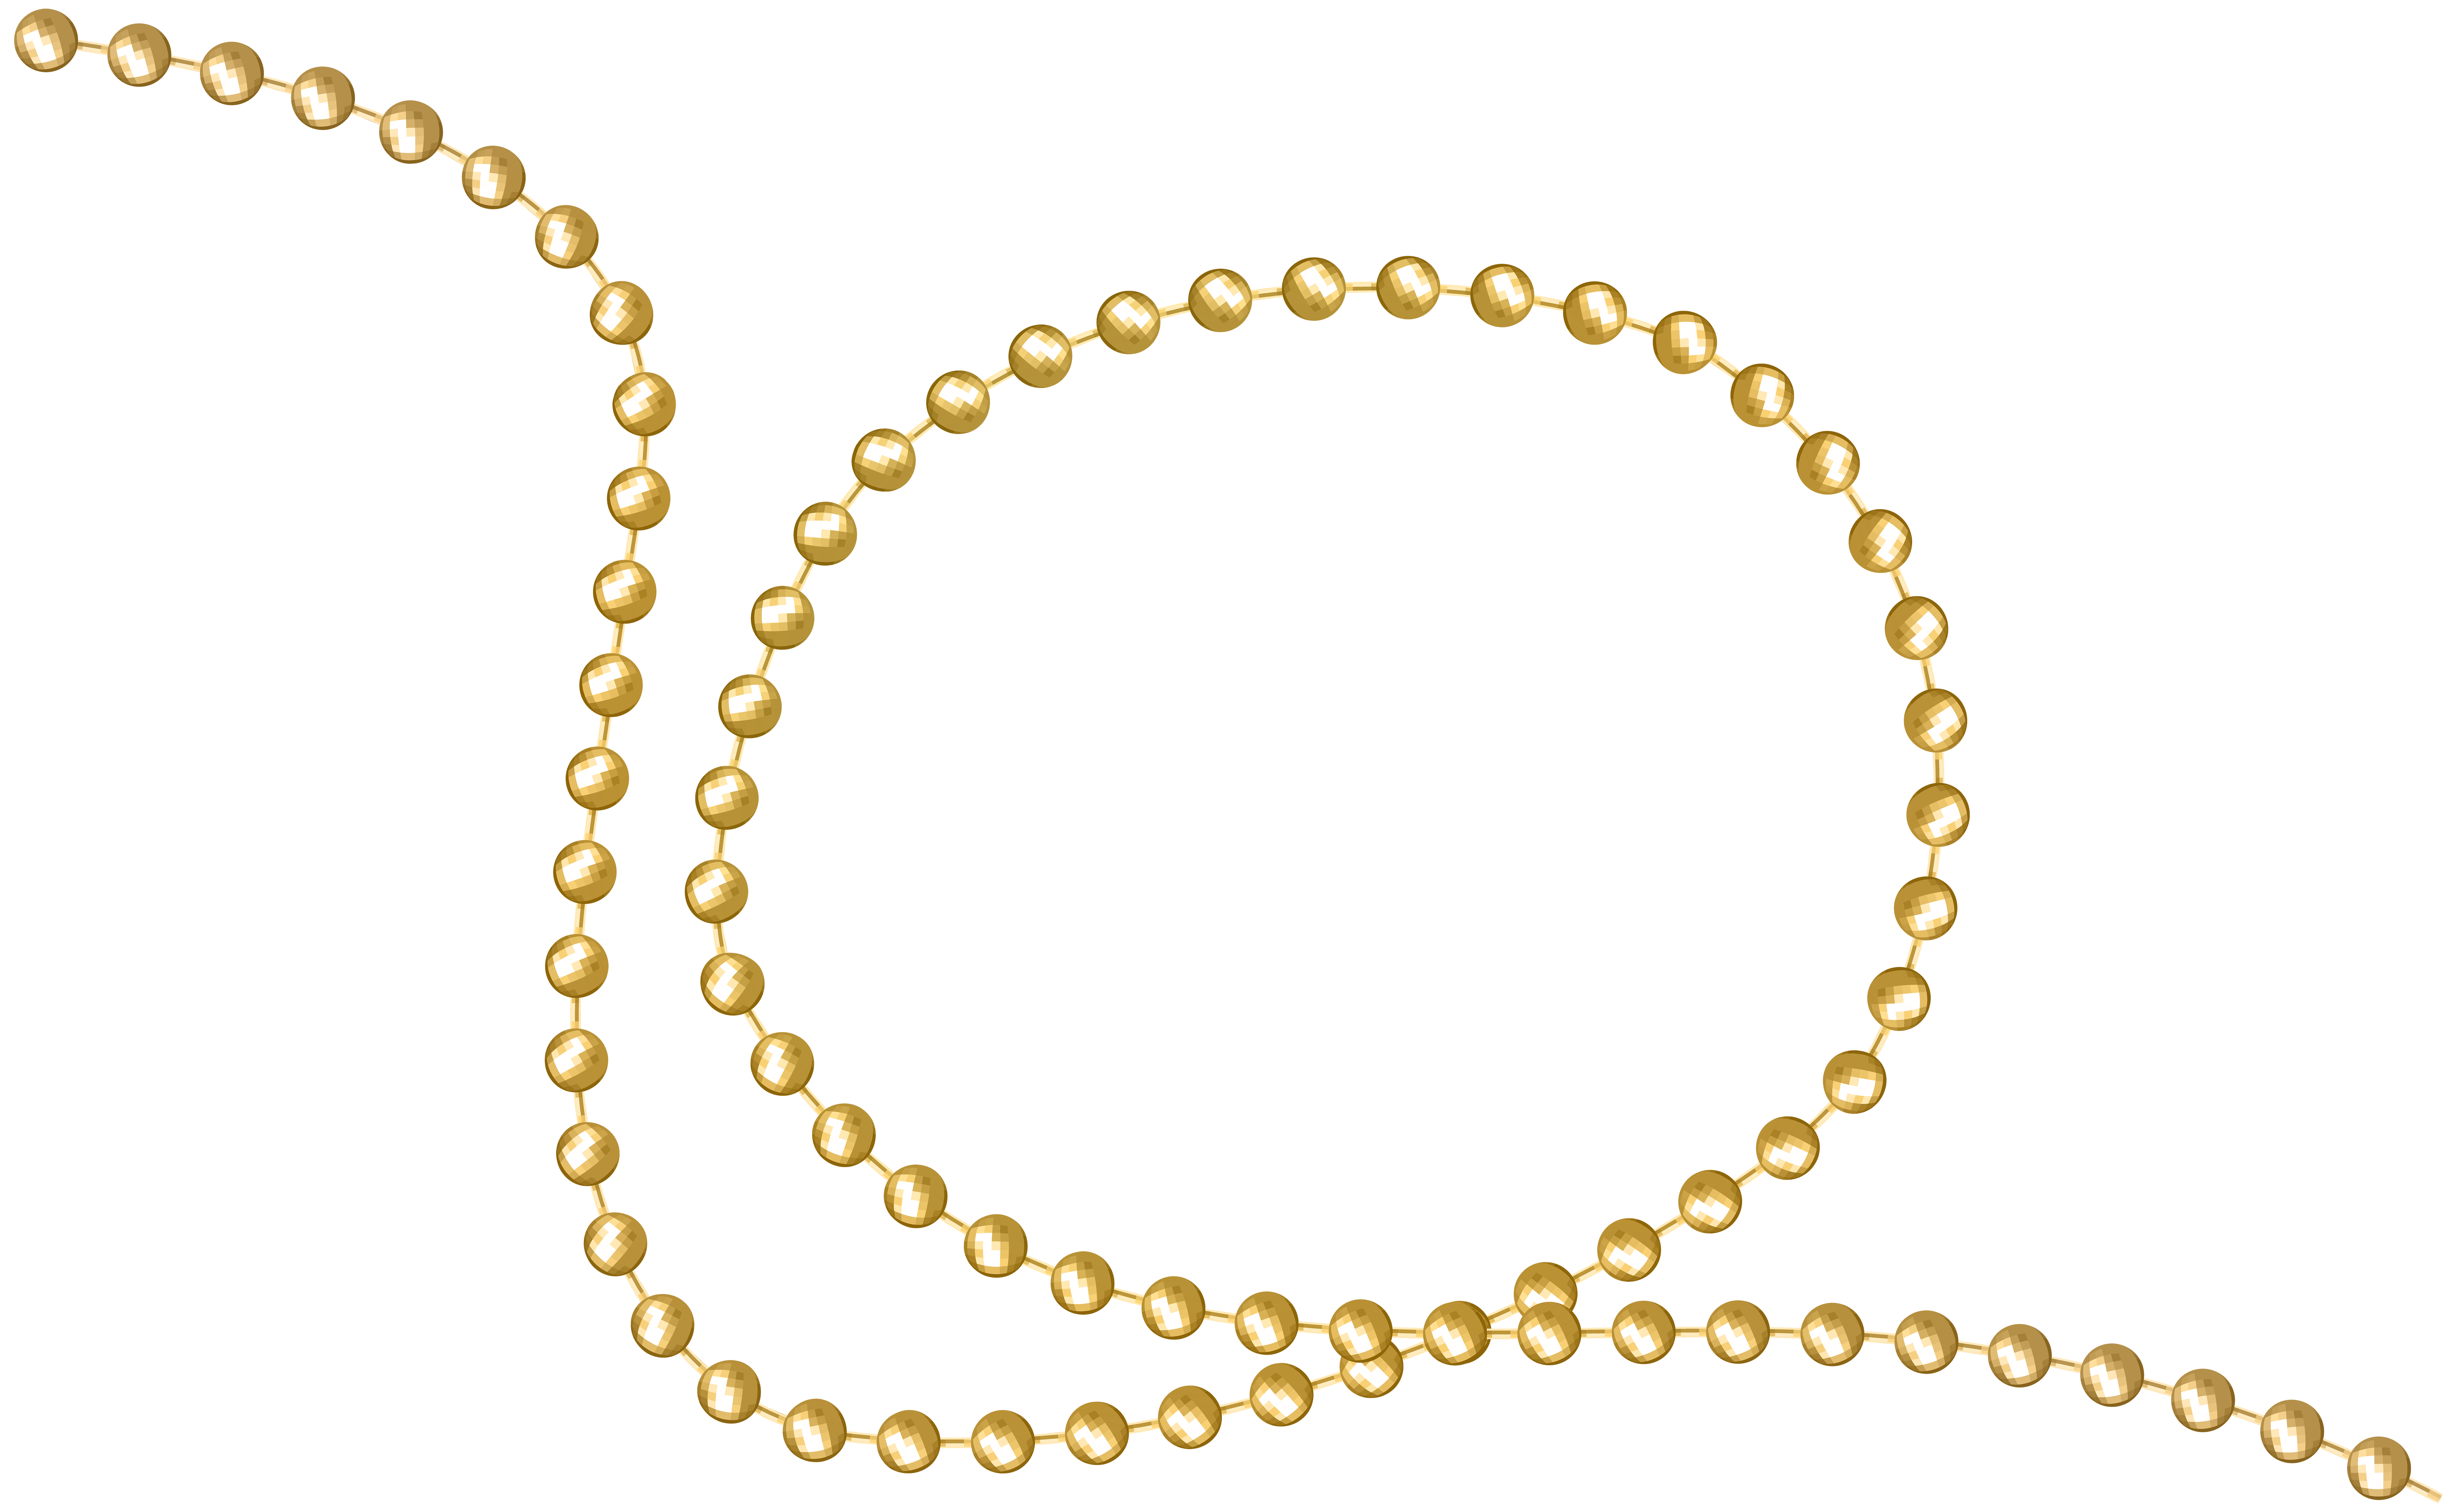 Gold Beads Decor PNG Clip Art Image.